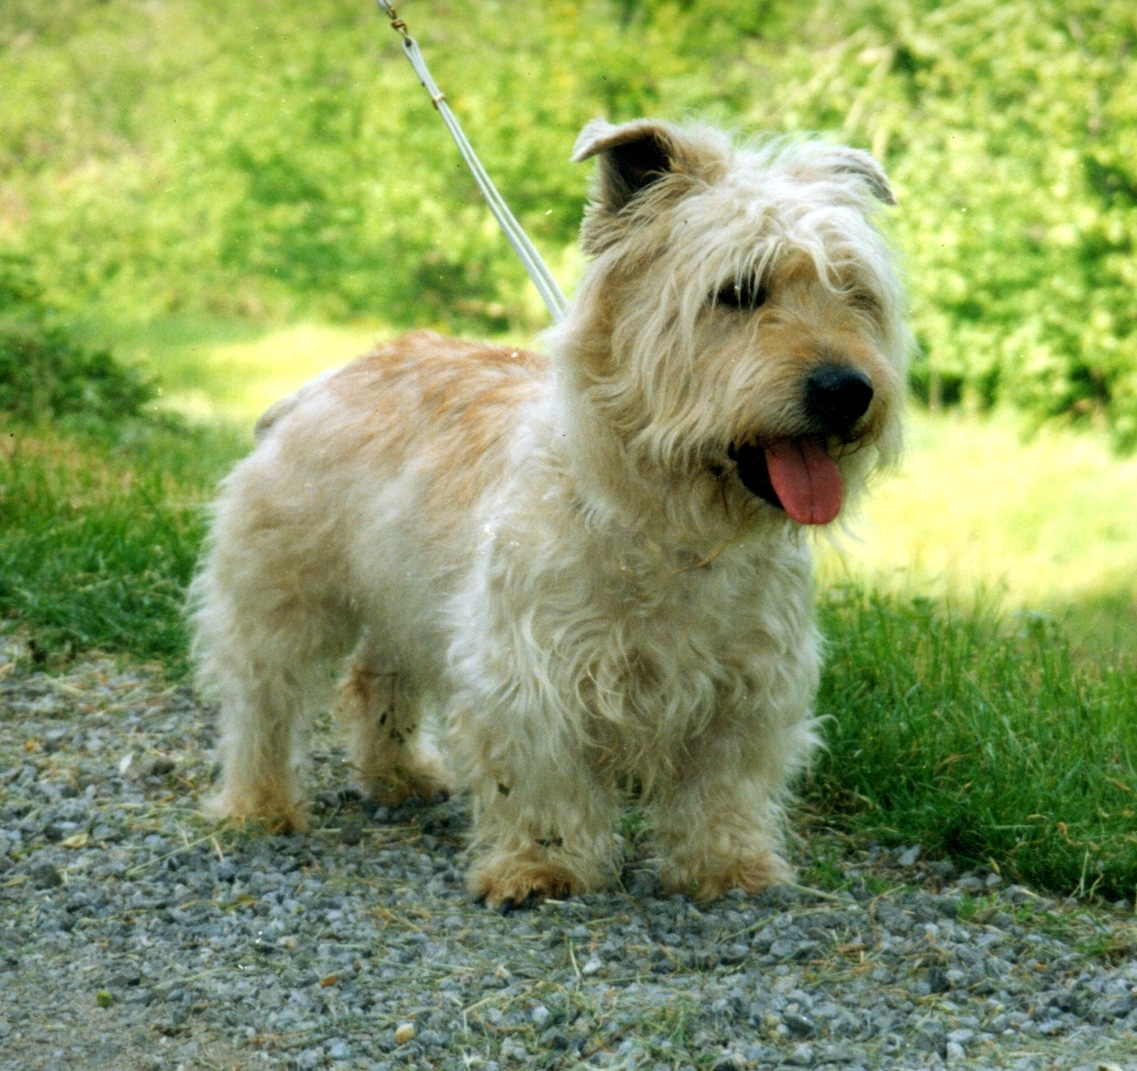 Glen of imaal terrier dogs breeds pets glen of imaal terrier altavistaventures